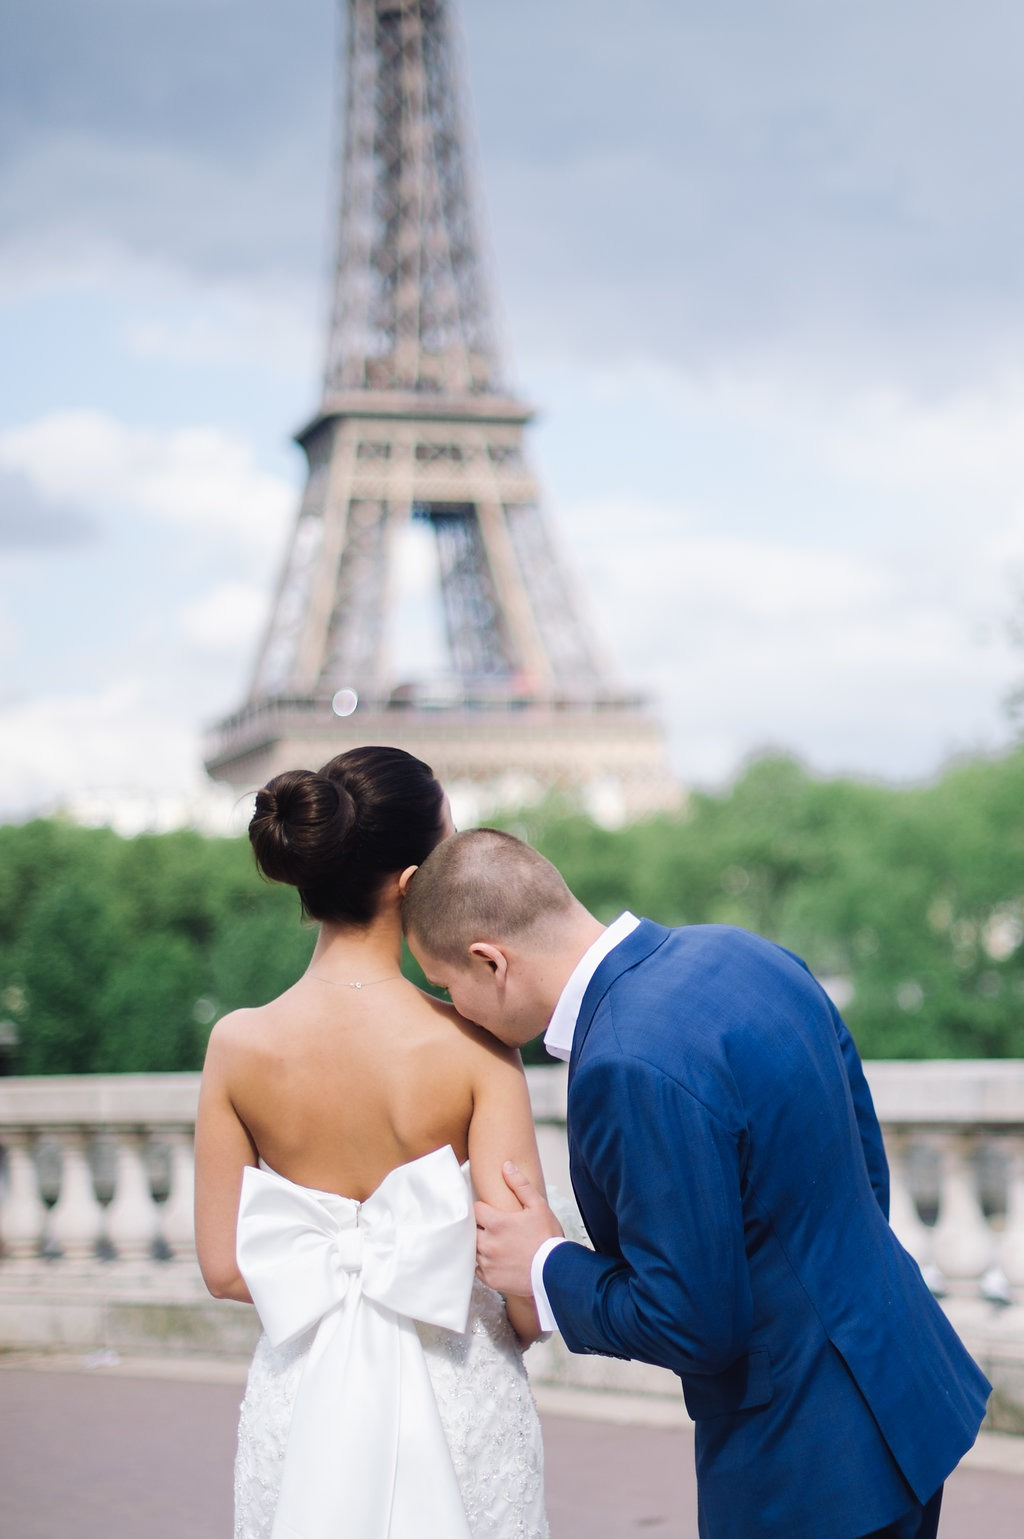 Eloped to Paris